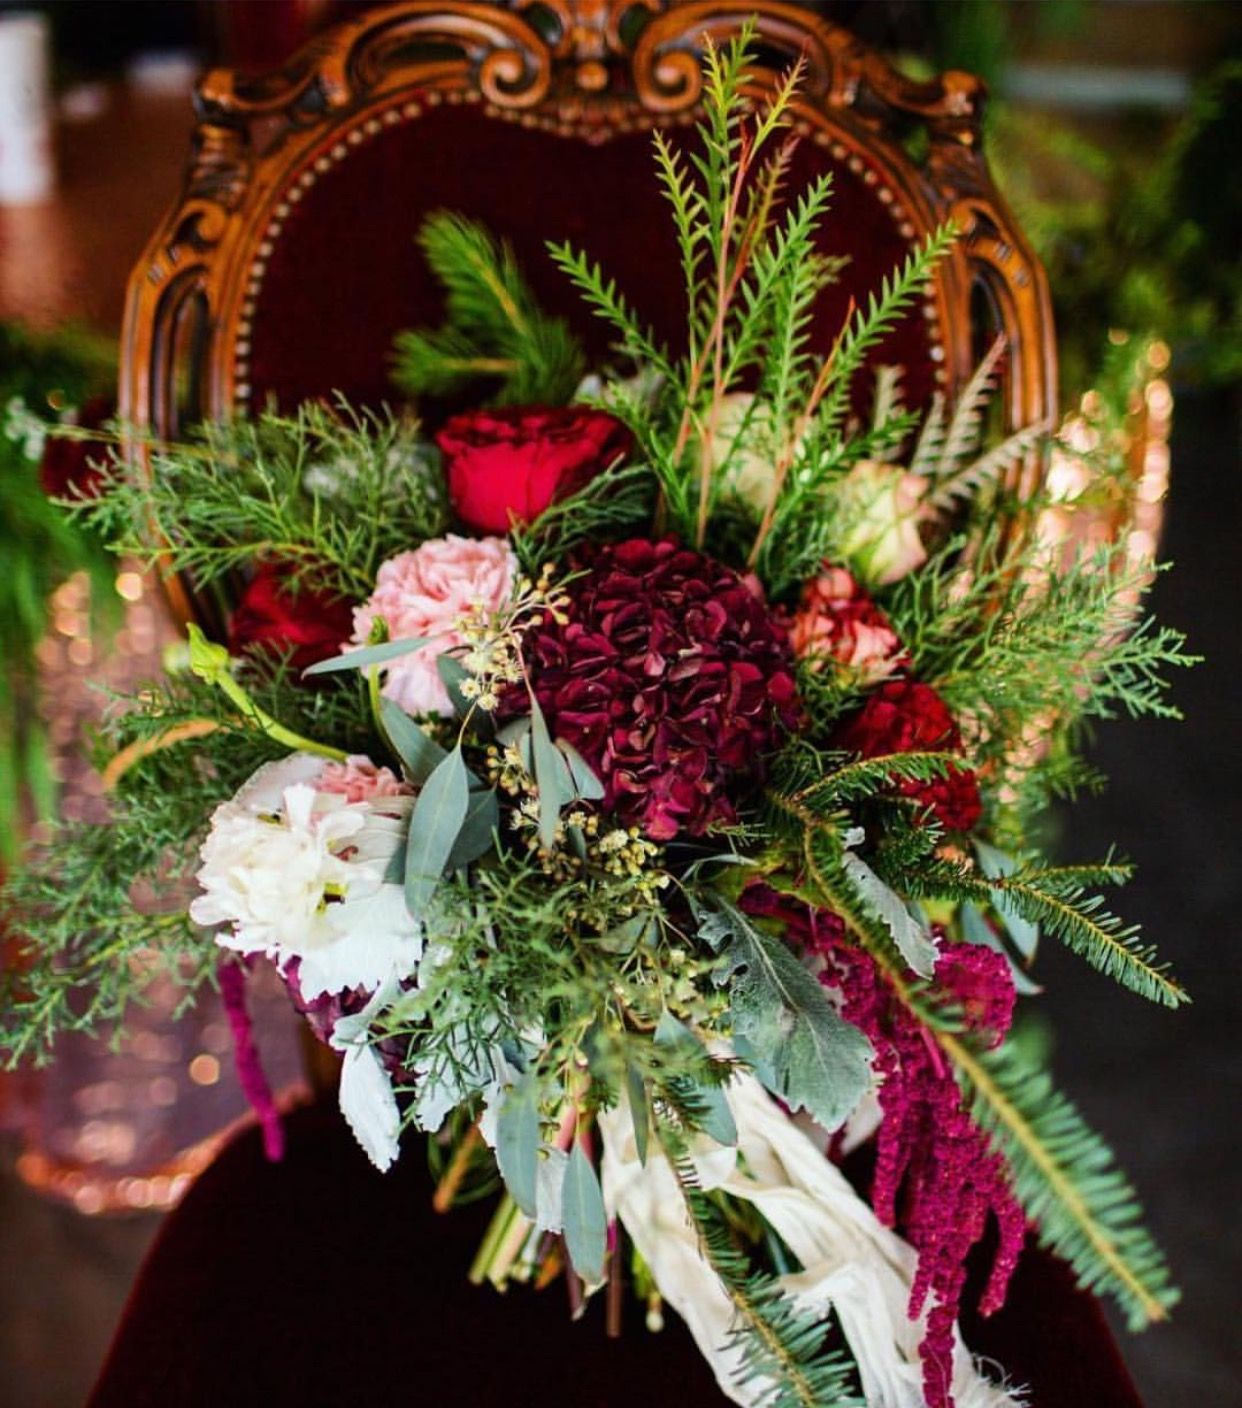 Darling Bouquet filled with curly pine, hanging amaranthus, cedar,cypres,pine, dusty miller, garden roses, carnations, hydrangeas, spray roses, & seeded eucalyptus! And of course our Crushed Vintage Red Velvet Chair is a stunning accessory !